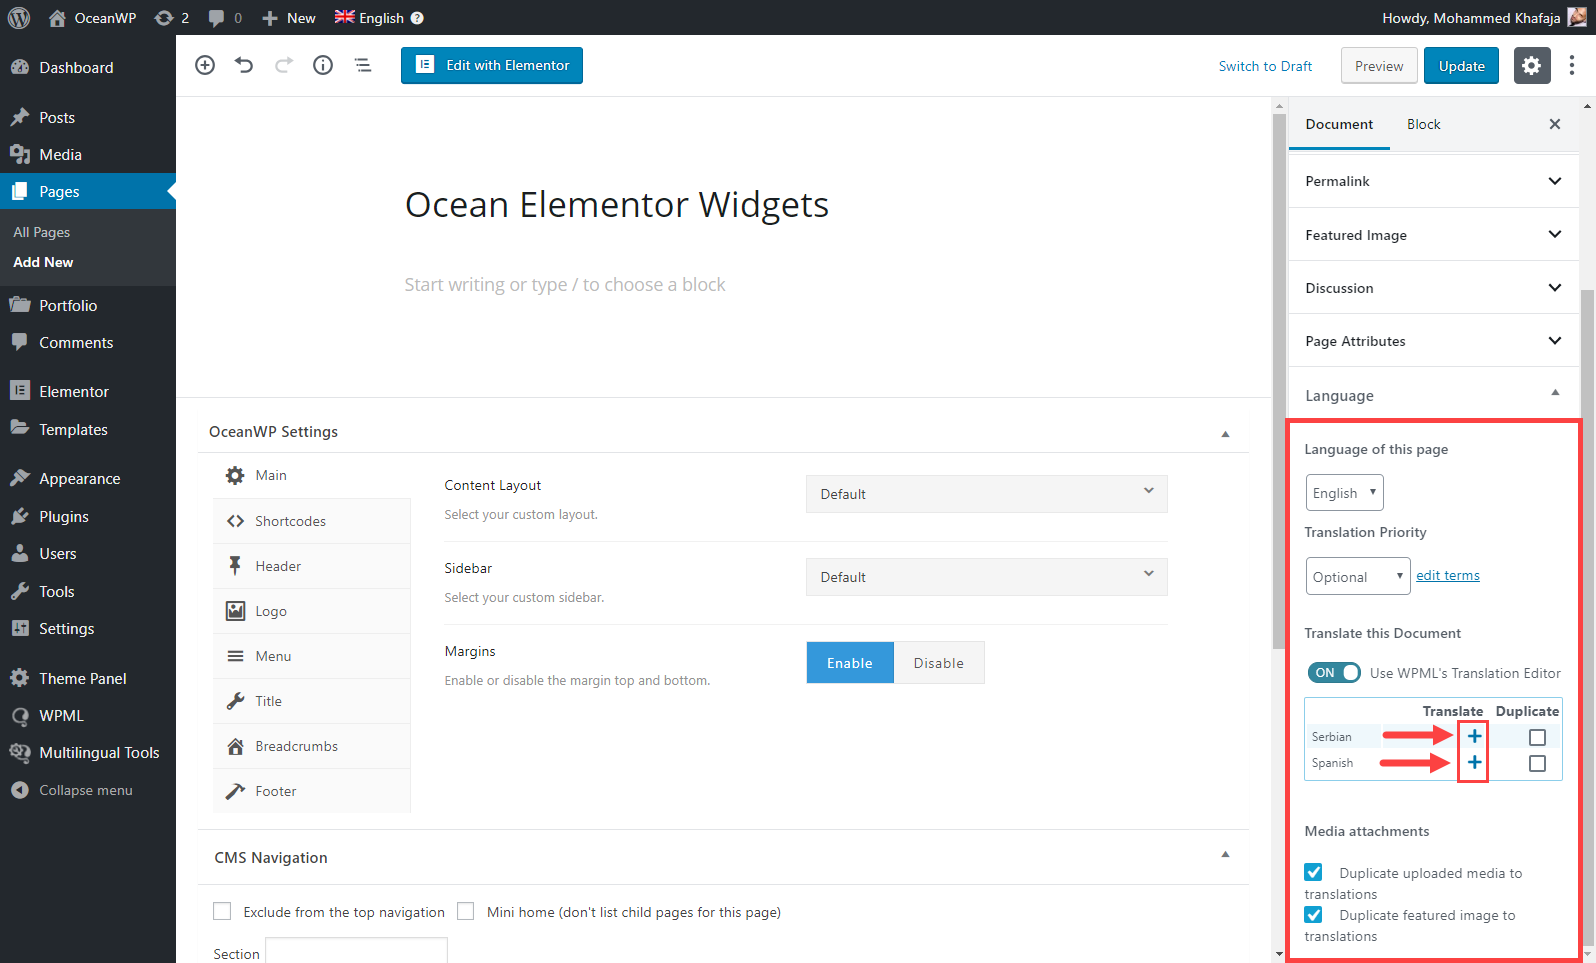 OceanWP Extensions Compatibility with WPML - WPML